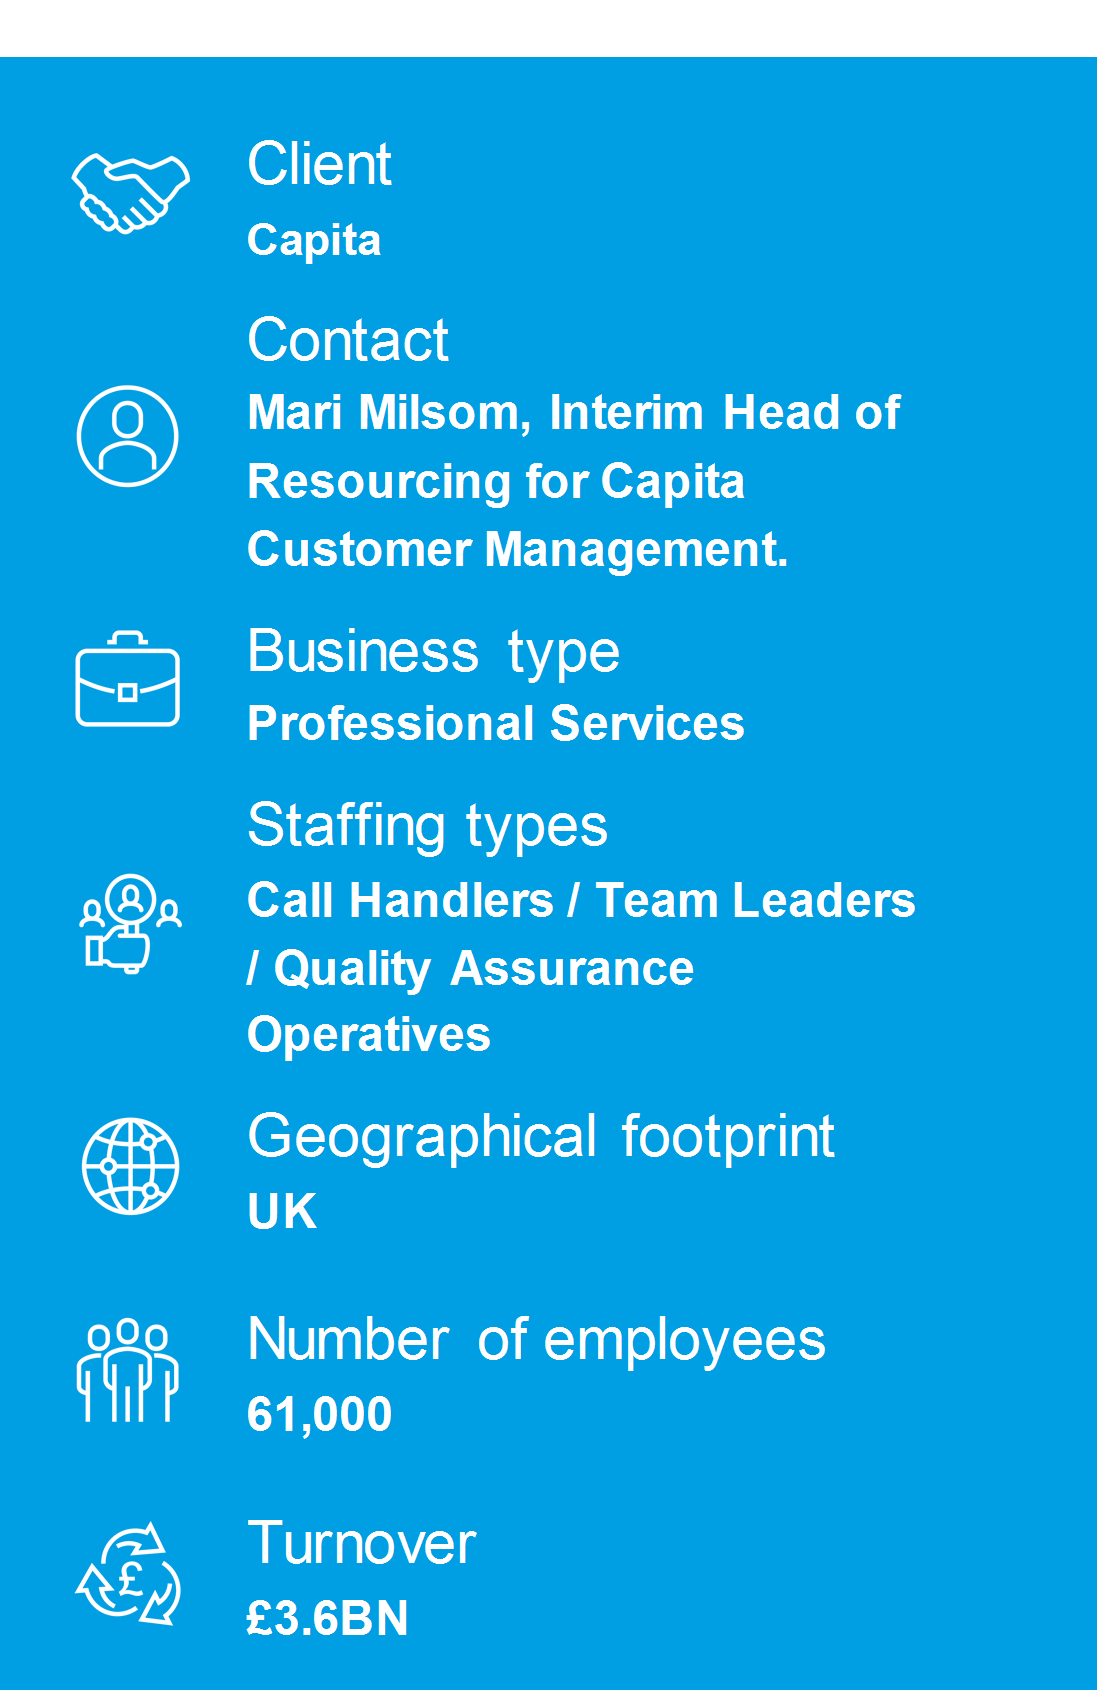 Capita Company Overview: Staffing Types = Call Handlers, Team Leaders, Quality Assurance Operatives, Geography = UK